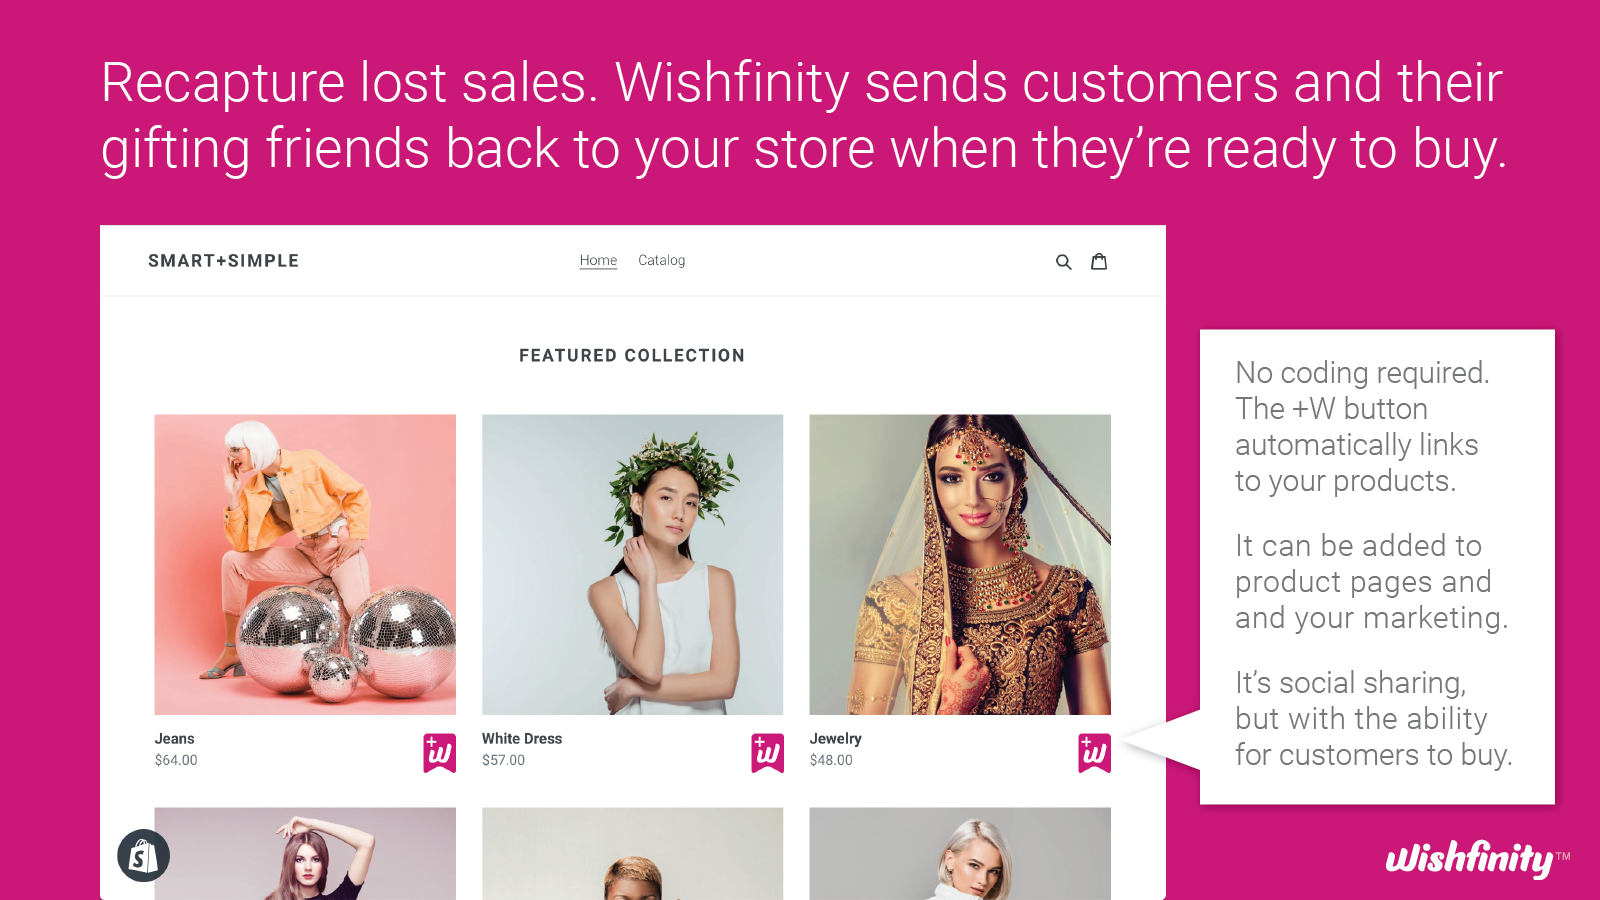 Wishfinity Helps You Sell to Gift-Givers and More Consumers